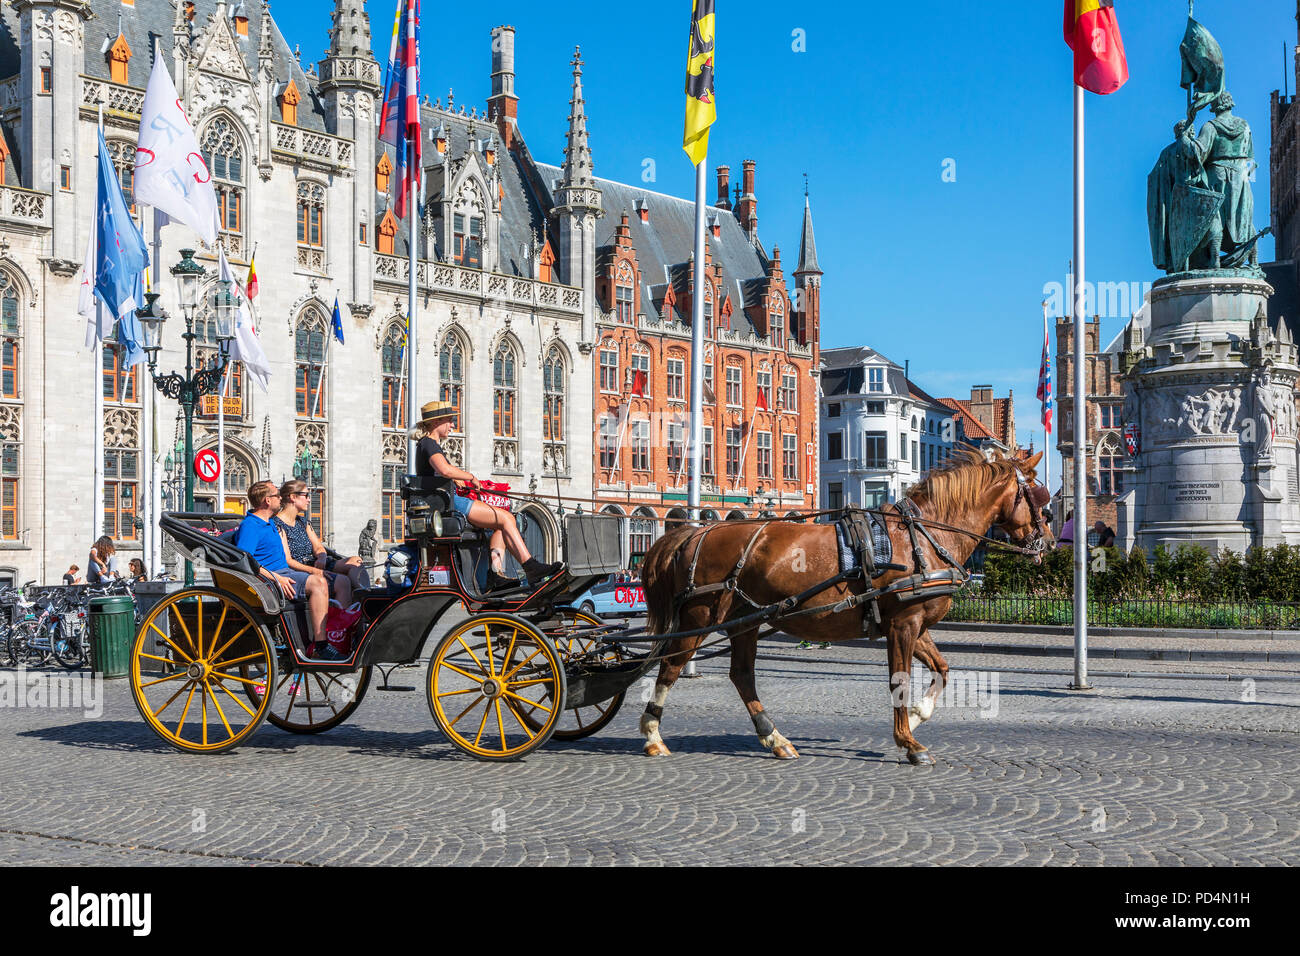 Horse and trap taking tourists for a city tour, Markt Square, Bruges, Belgium - Stock Image